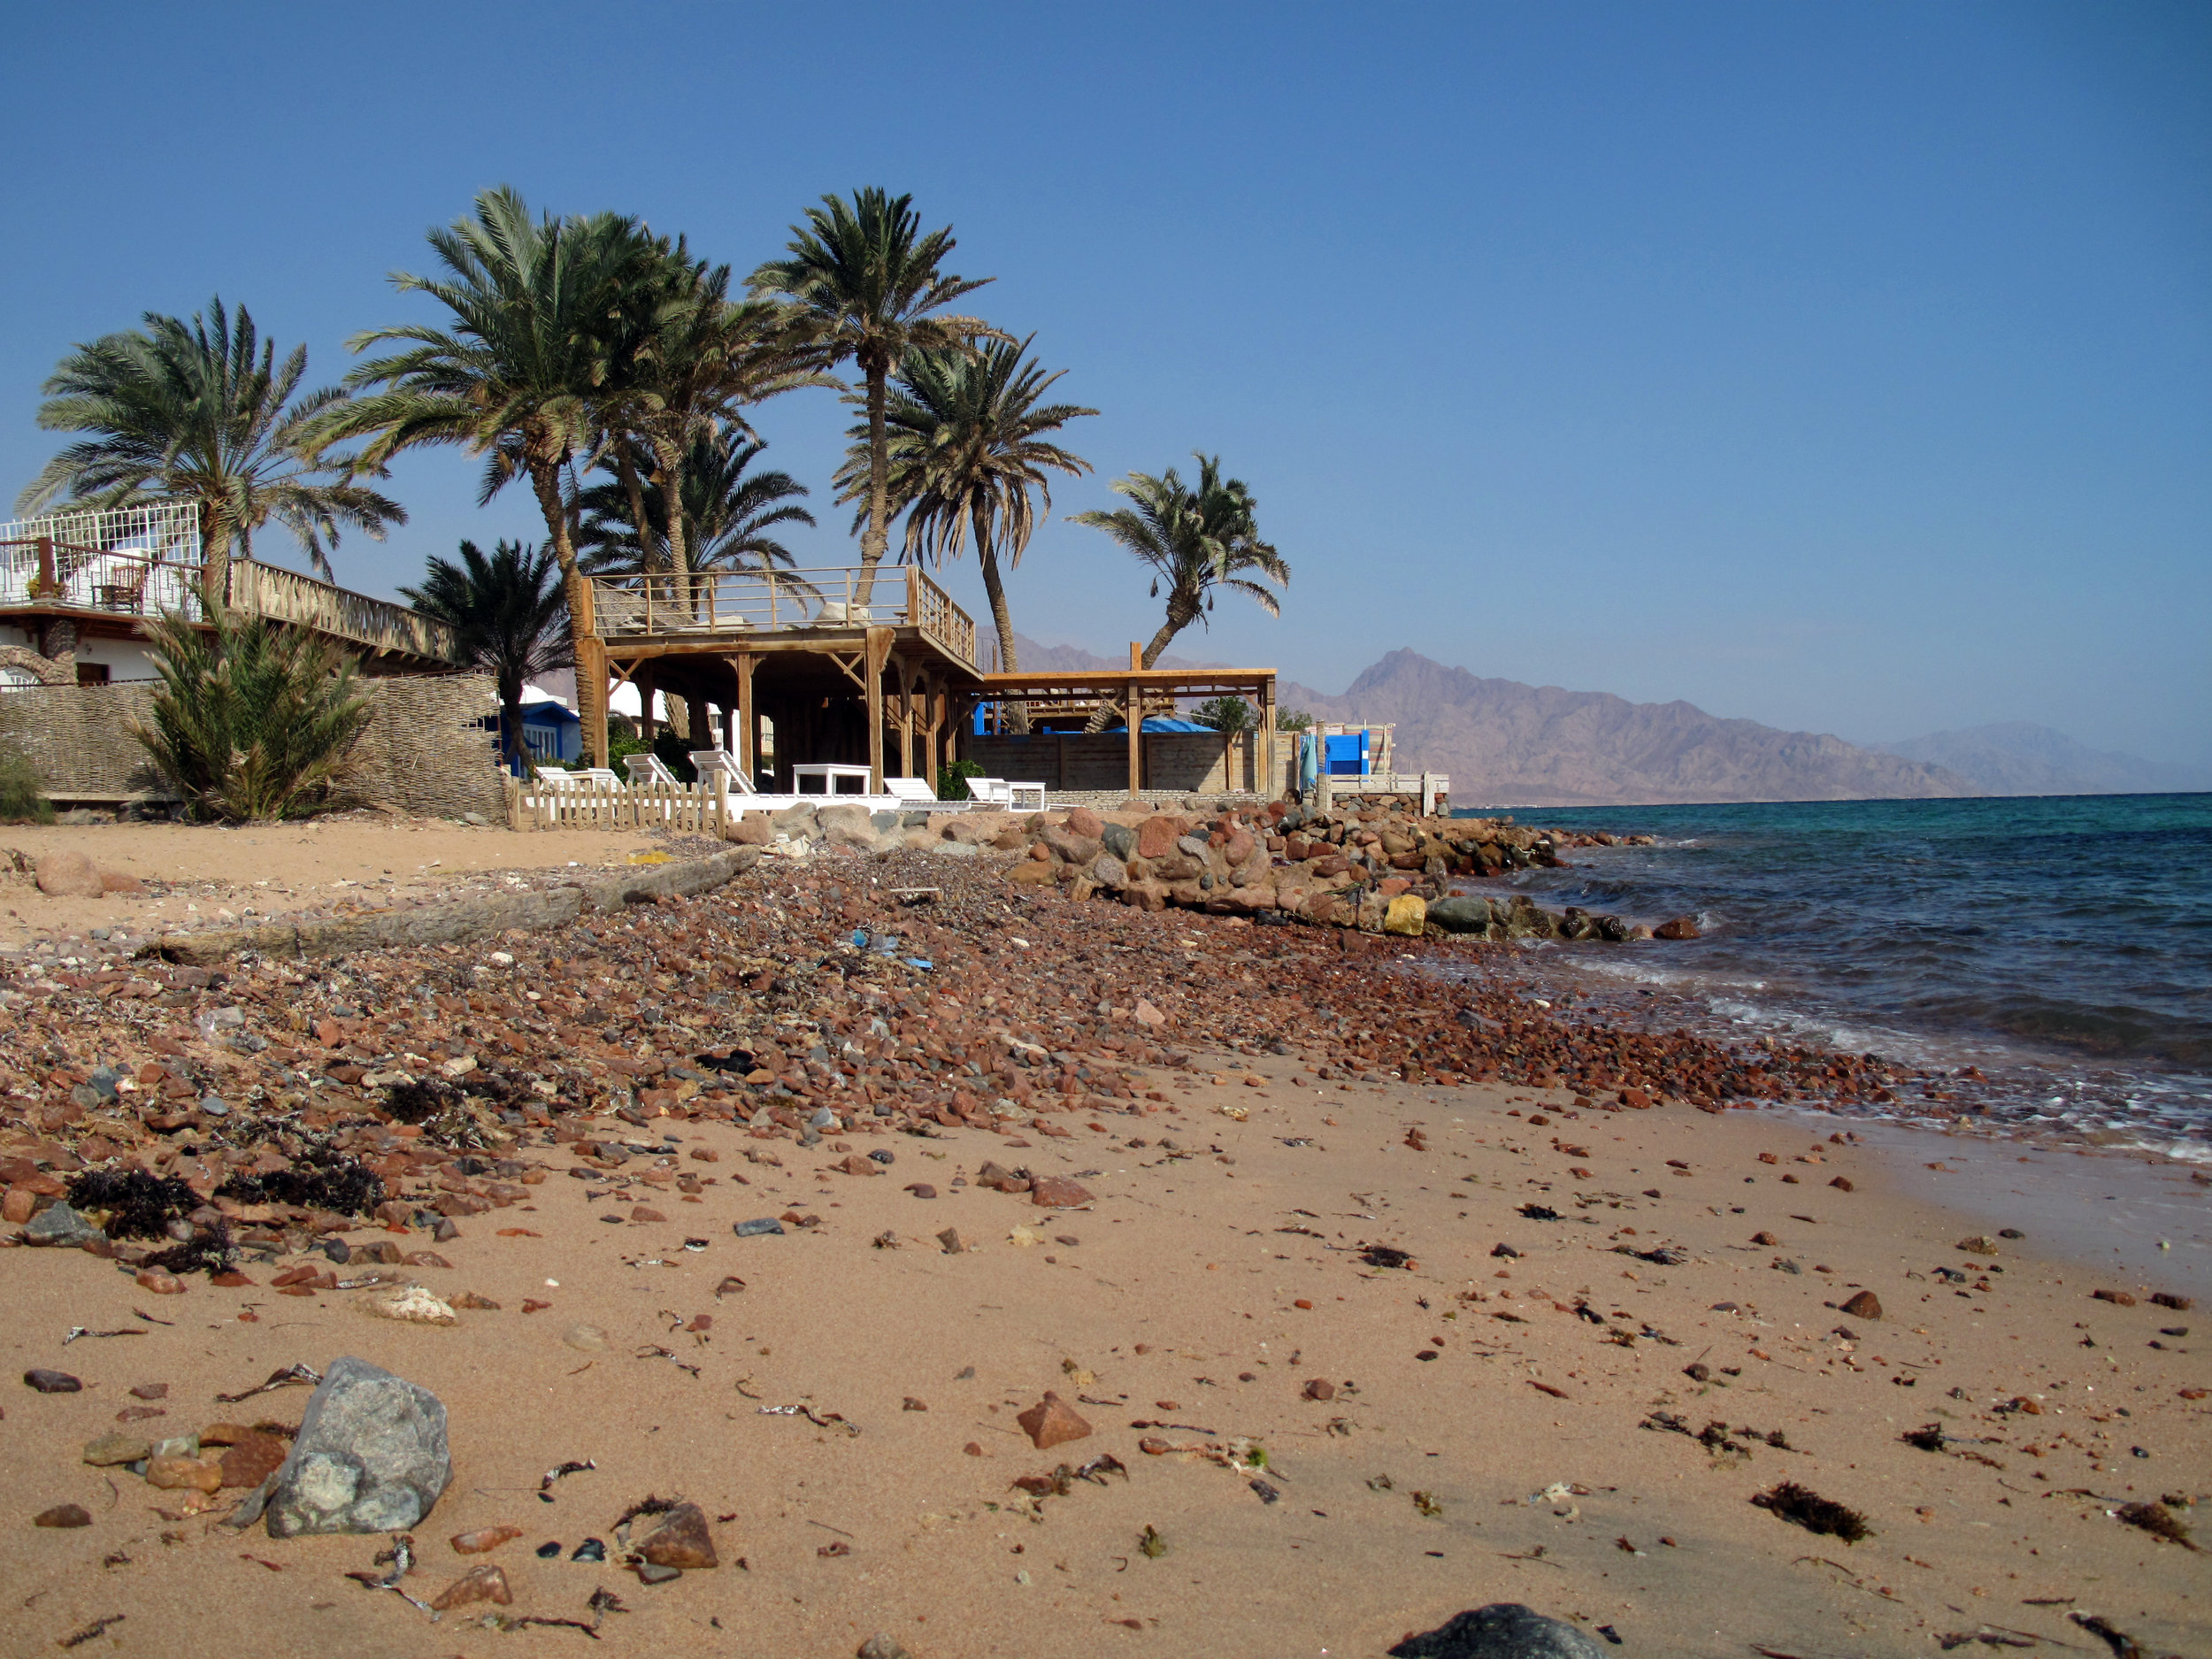 Dahab_Coachhouse_Egypt_Sinai_Red_Sea_Masbat_Bay-_3.JPG